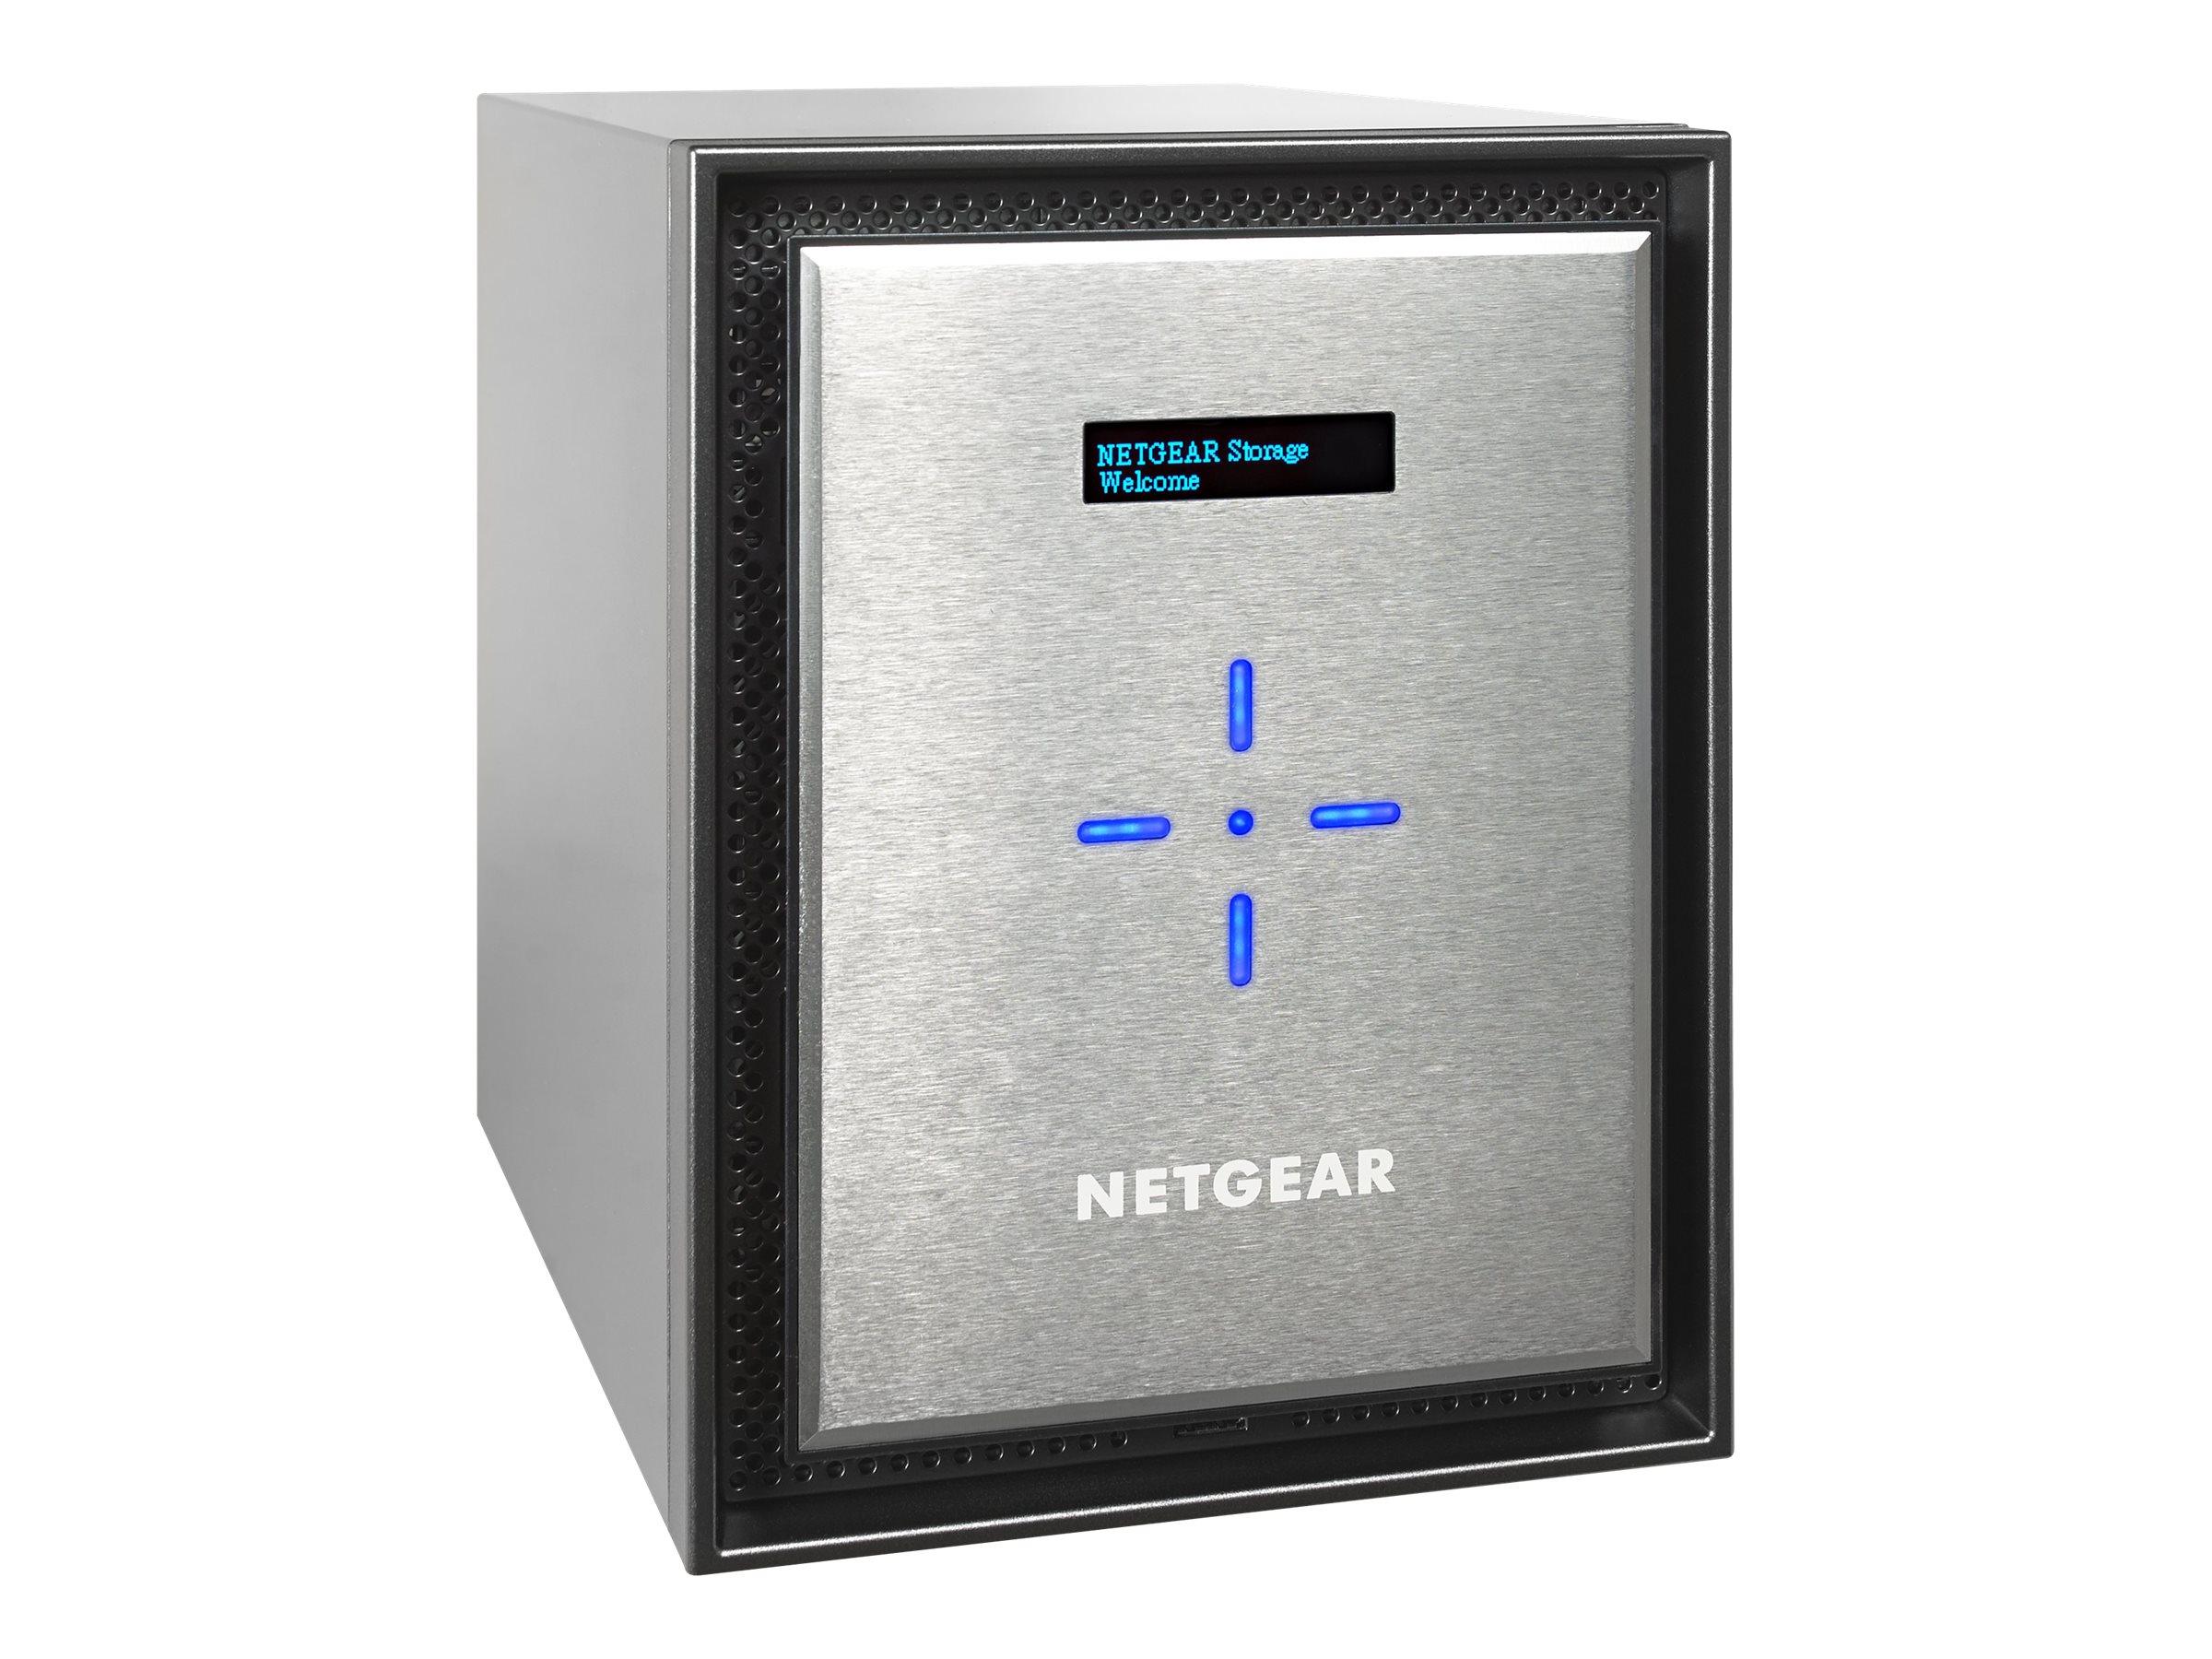 Netgear ReadyNAS 626X 6-Bay Network Storage w  Xeon Quad-Core Server Processor & 6X4TB Hard Drives, RN626XE4-100NES